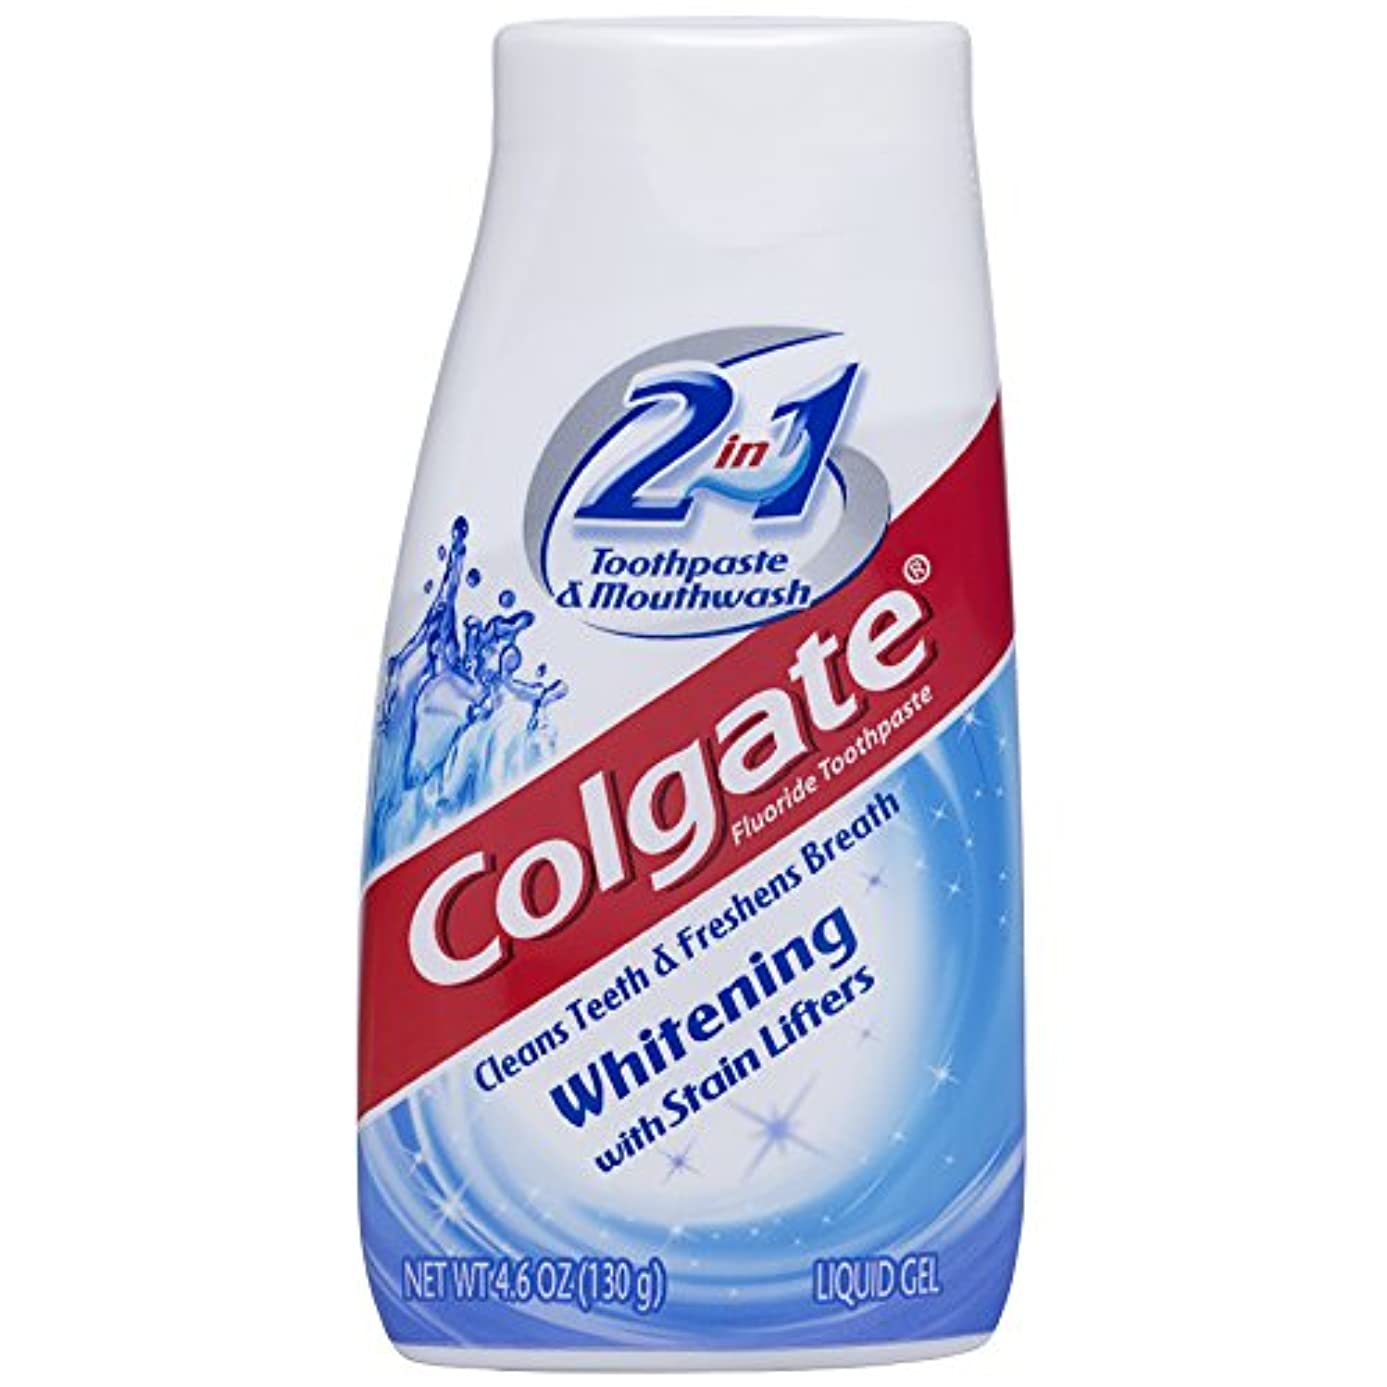 超音速突き出す触覚海外直送品Colgate 2 In 1 Toothpaste & Mouthwash Whitening, 4.6 oz by Colgate